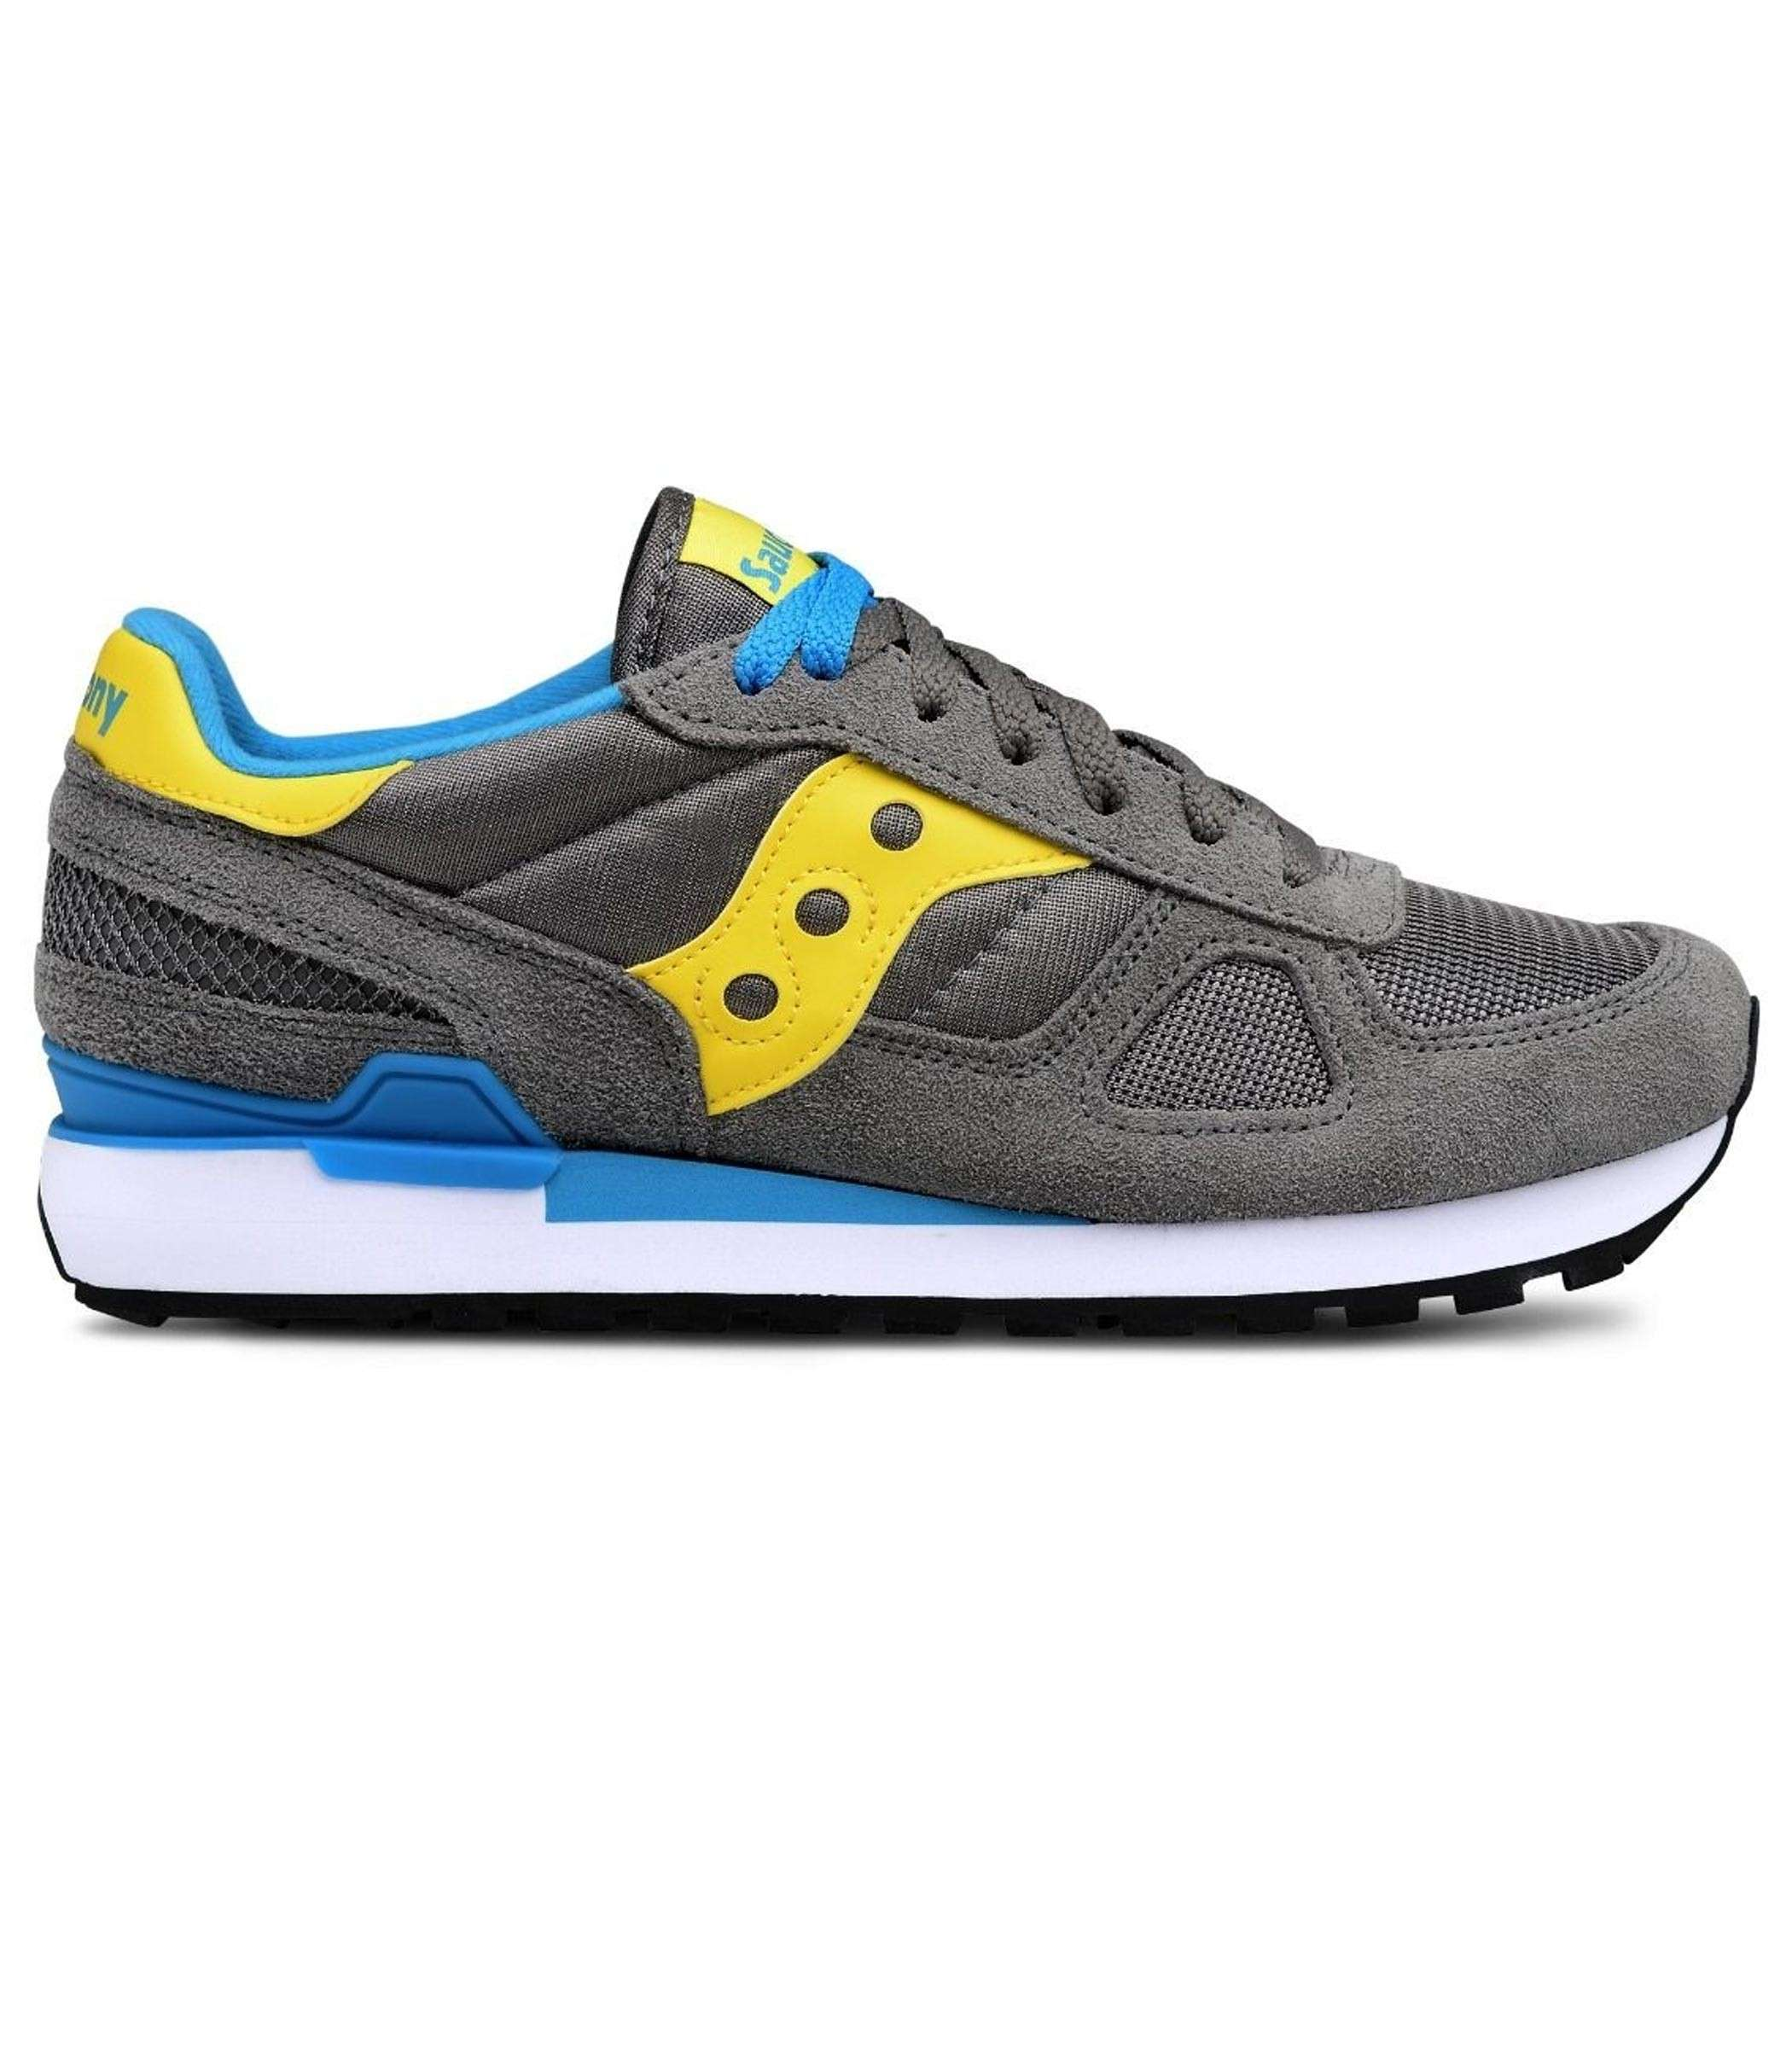 https://www.parmax.com/media/catalog/product/a/i/AI-Outlet_Parmax-Sneackers-Saucony-S2108-535-A.jpg